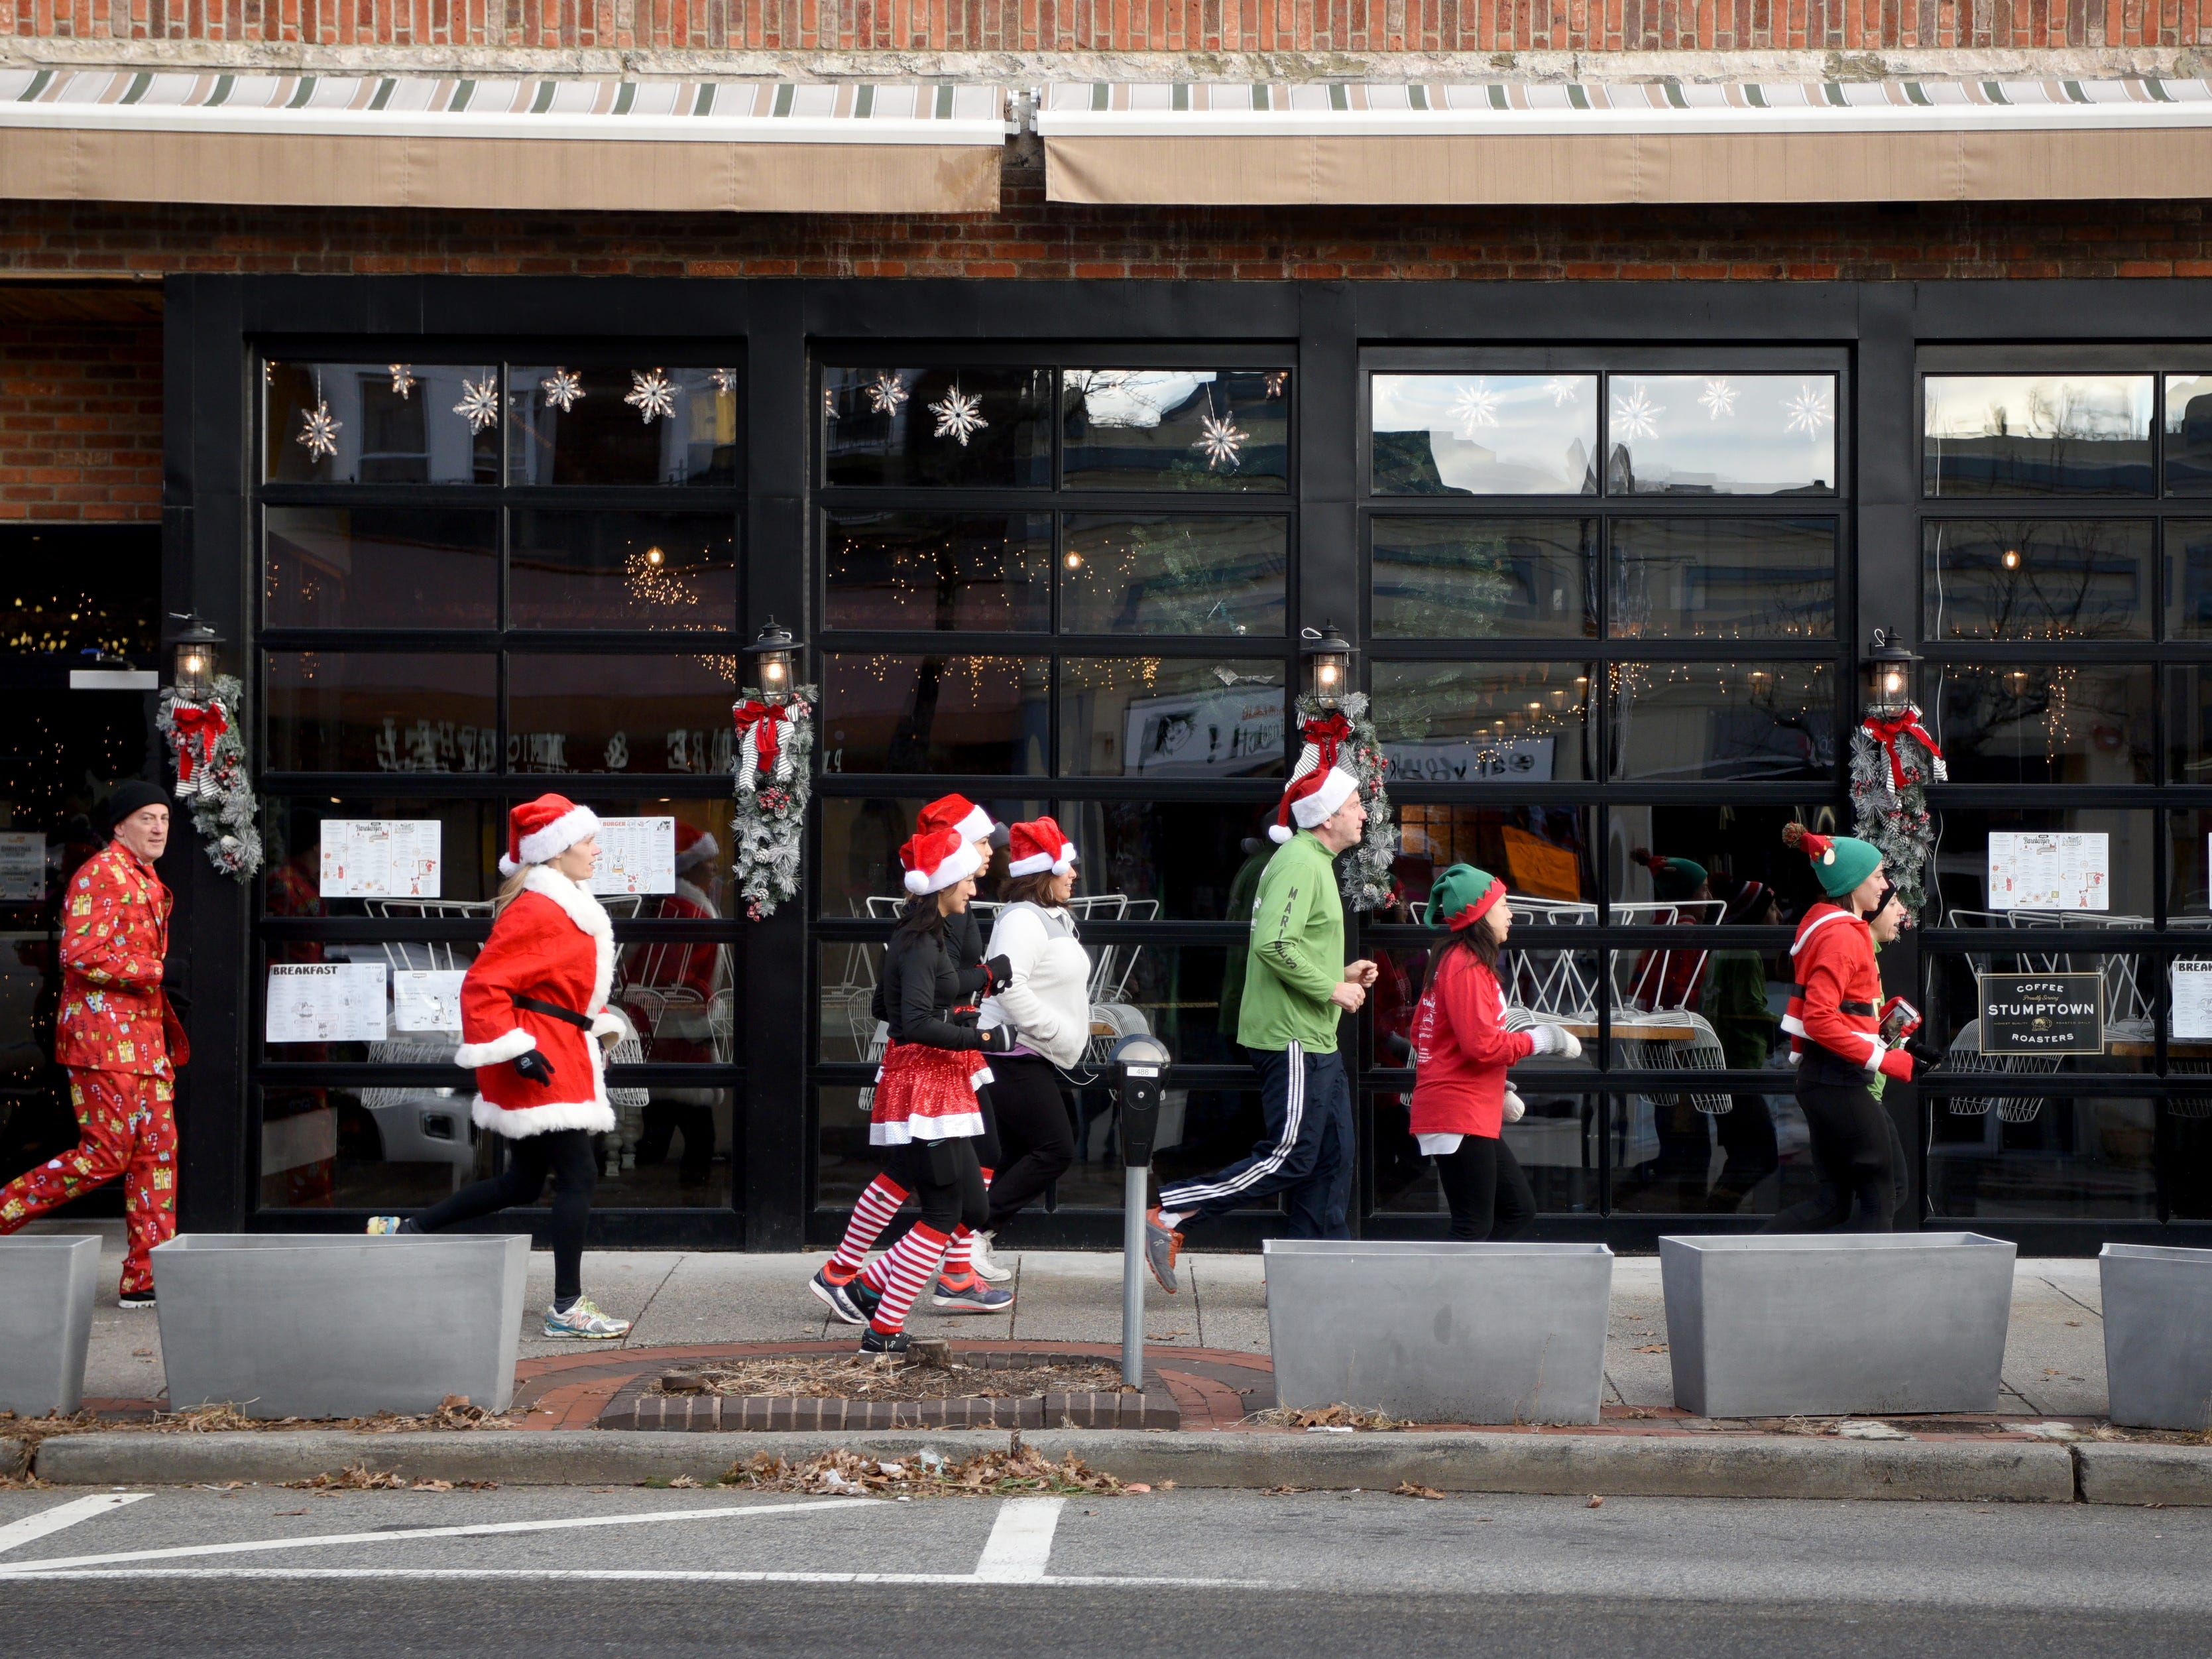 Racefaster Ridgewood organized a fun Santa Run on Sunday, December 23, 2018. A group of runners make their way down E. Ridgewood Ave.